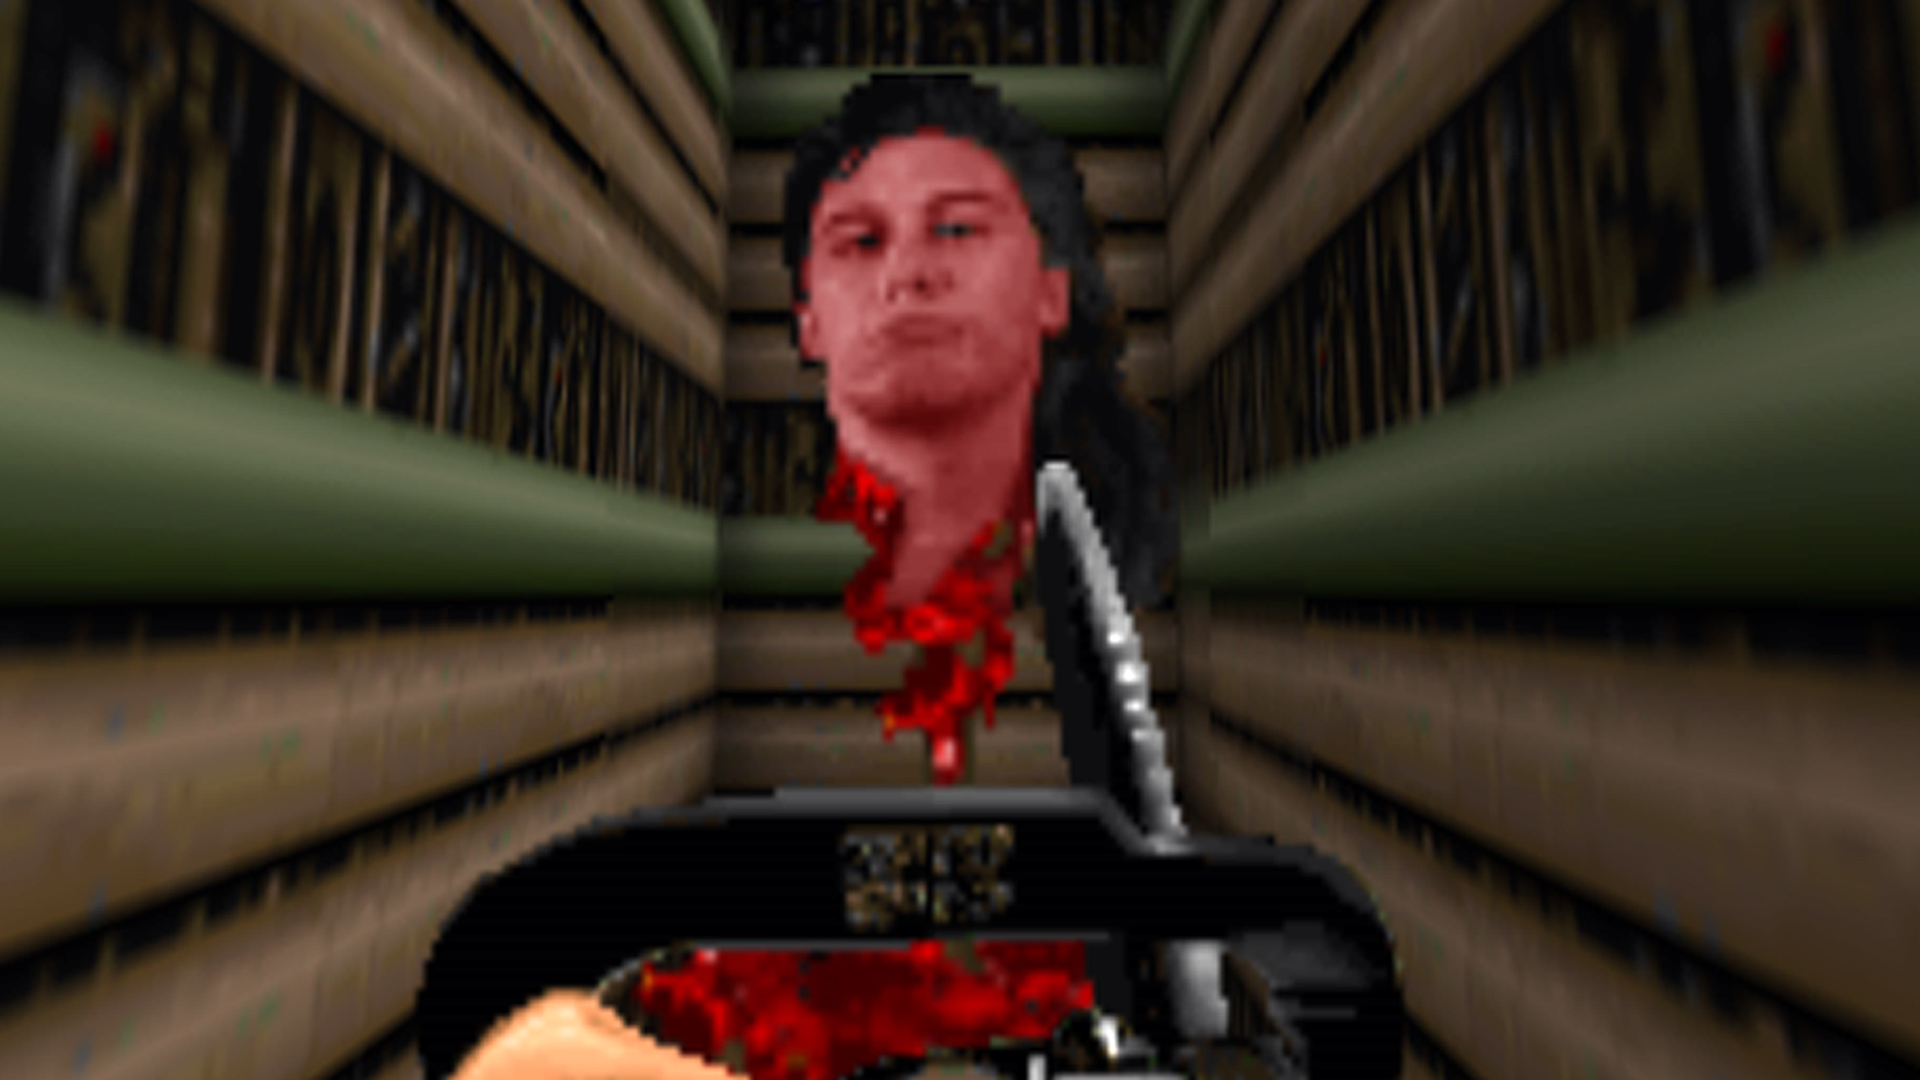 John Romero is working on Sigil 2 as an expansion for Doom 2